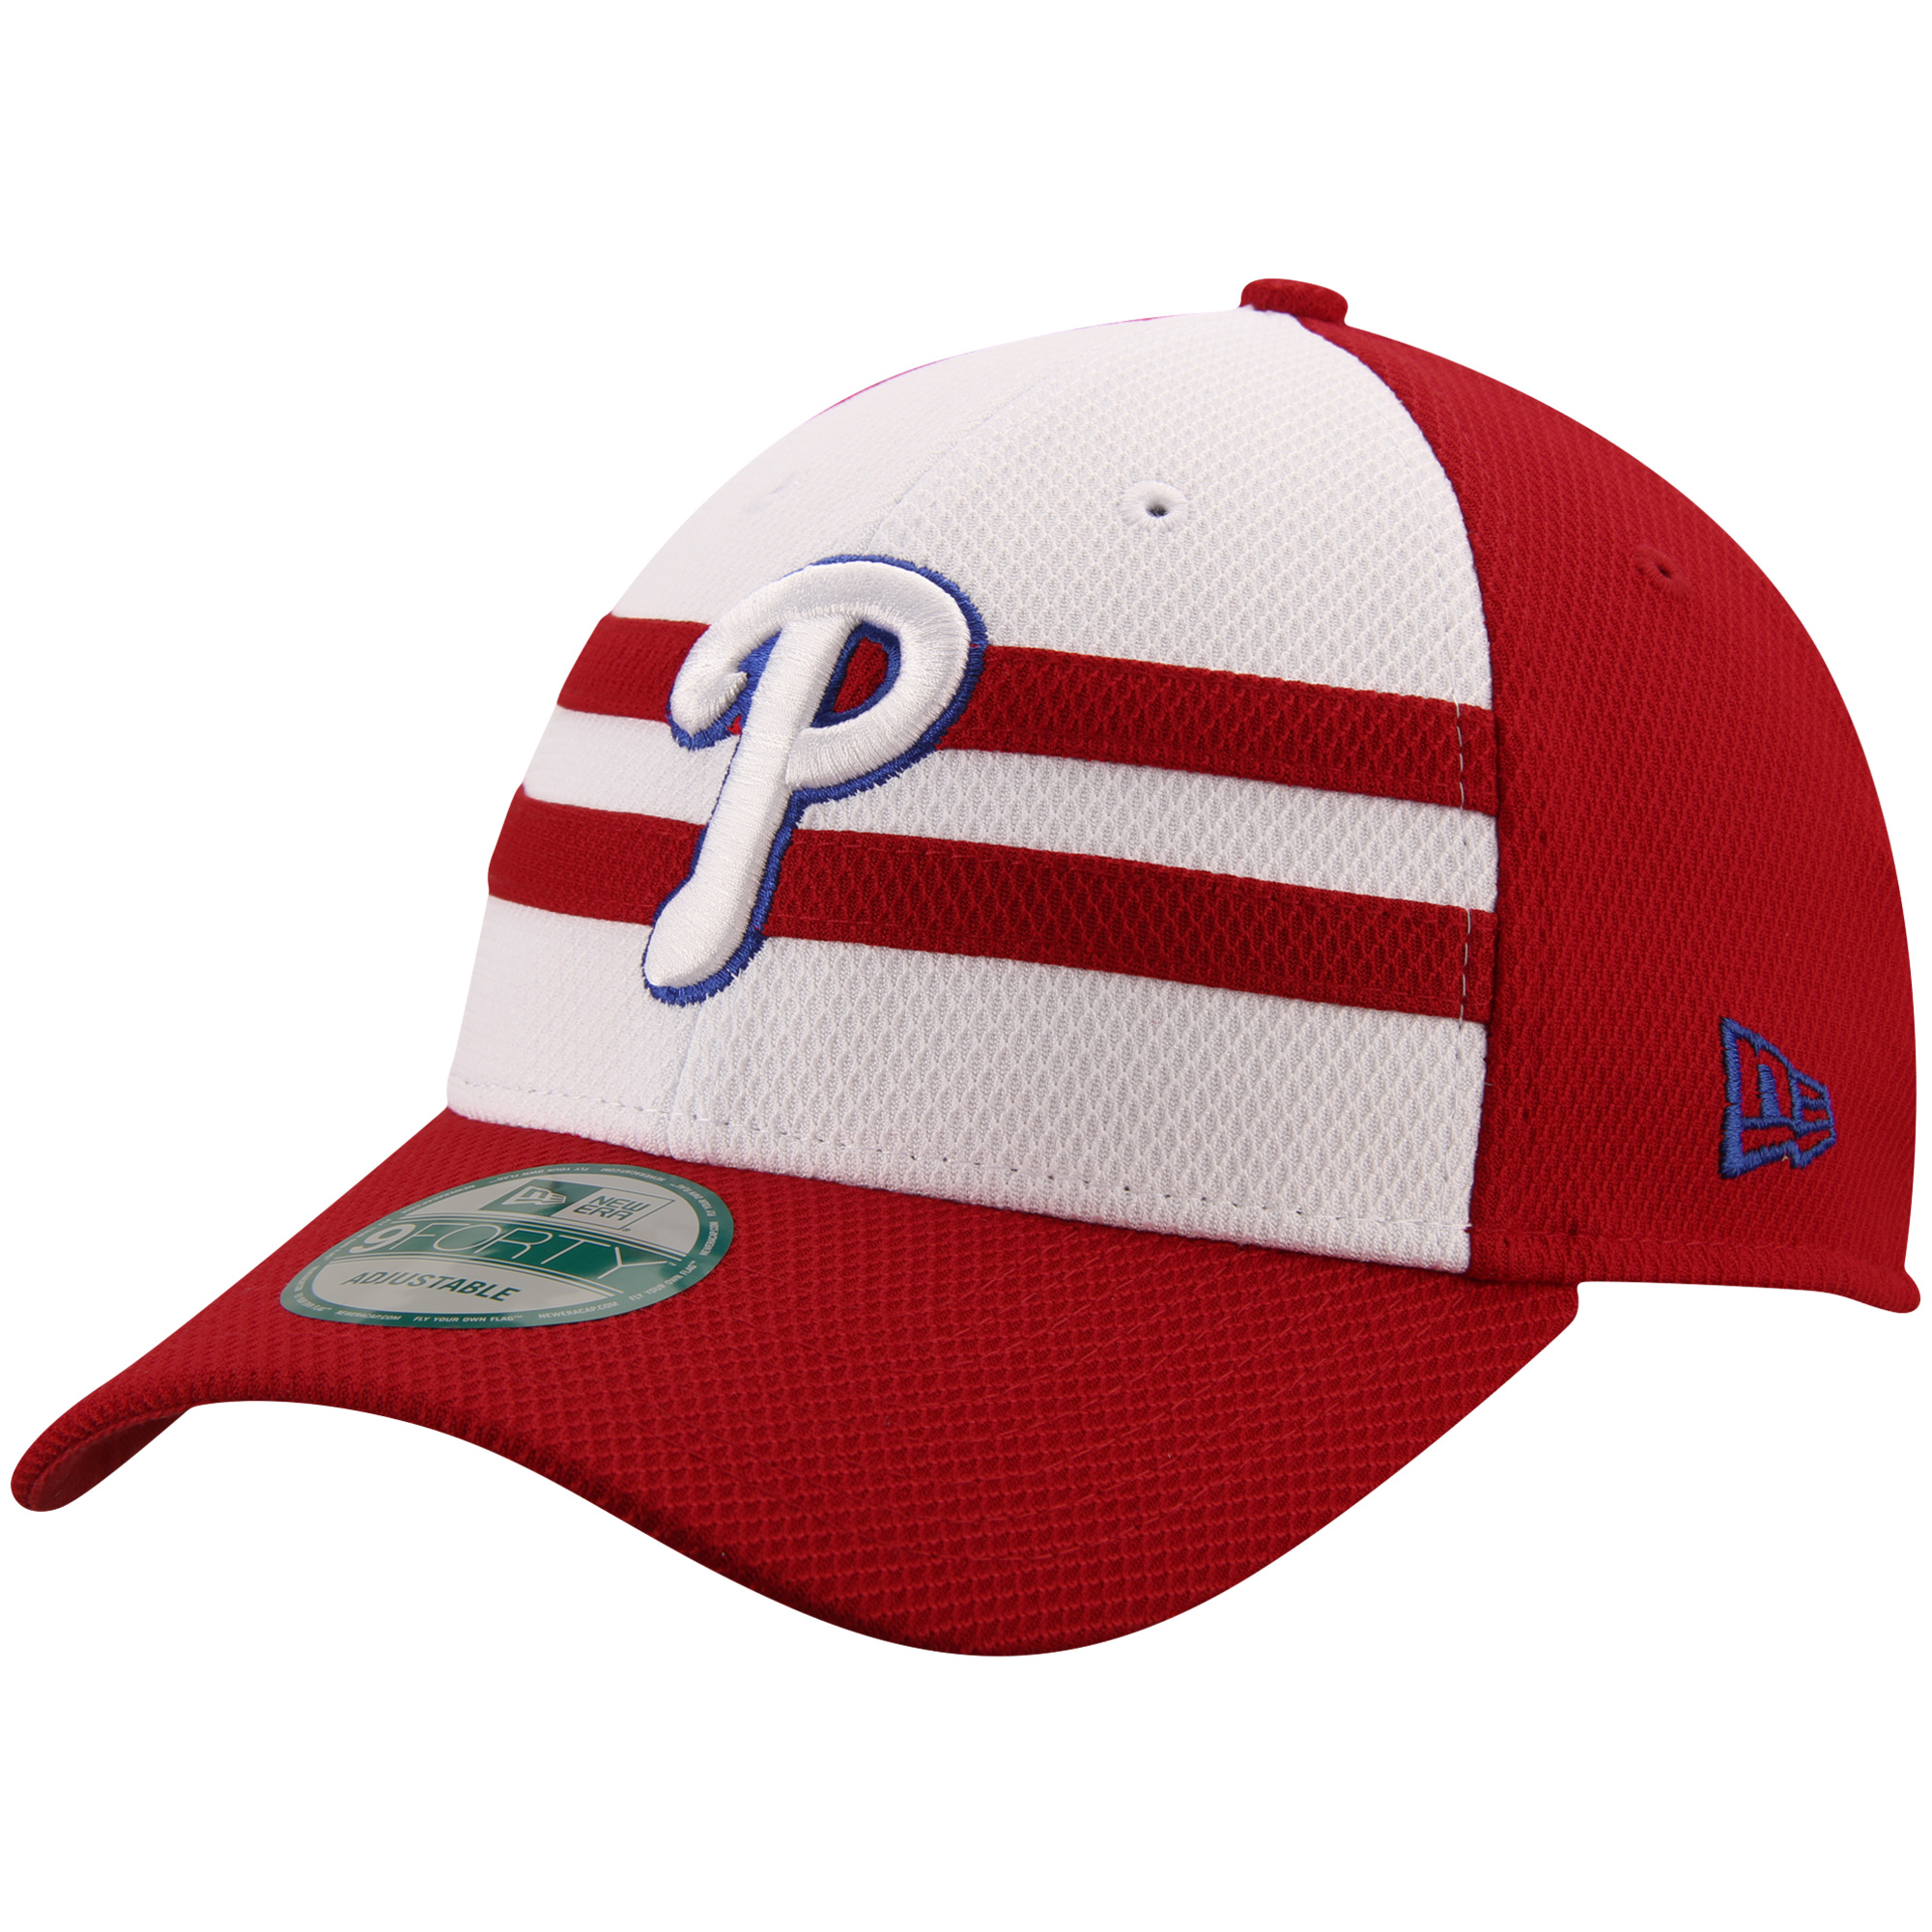 Philadelphia Phillies New Era 2015 MLB All-Star Game 9FORTY Adjustable Hat - White/Red - No Size